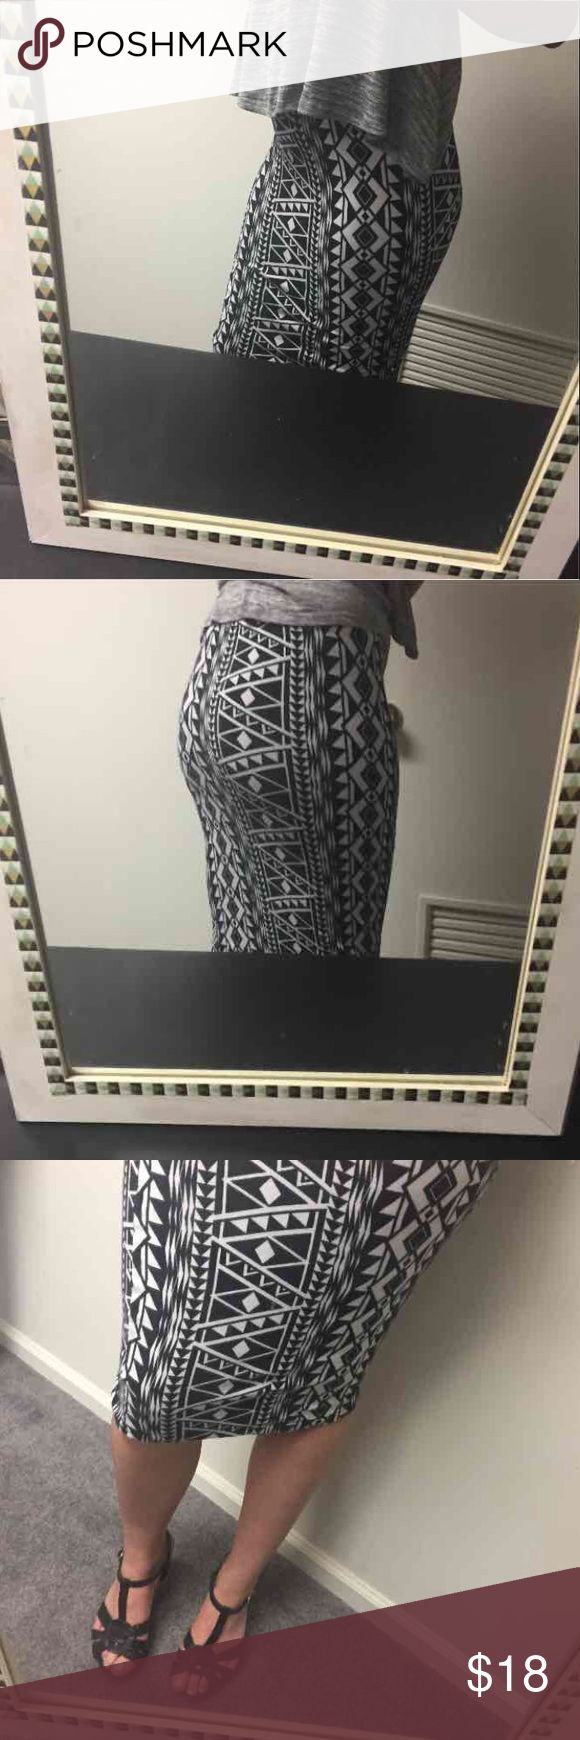 Flattering💜Tribal print bodycon Midi skirt NWOT Gorgeous skirt- lightweight yet super flattering-1 inch of elastic waistband. It goes with everything and can be worn day or night! 95% cotton 5% spandex **LISTED AS XS Because it's stretchy but juniors sizing******* fits like an xs also at the waist festival #concert #tumblr #summer PacSun Skirts Midi